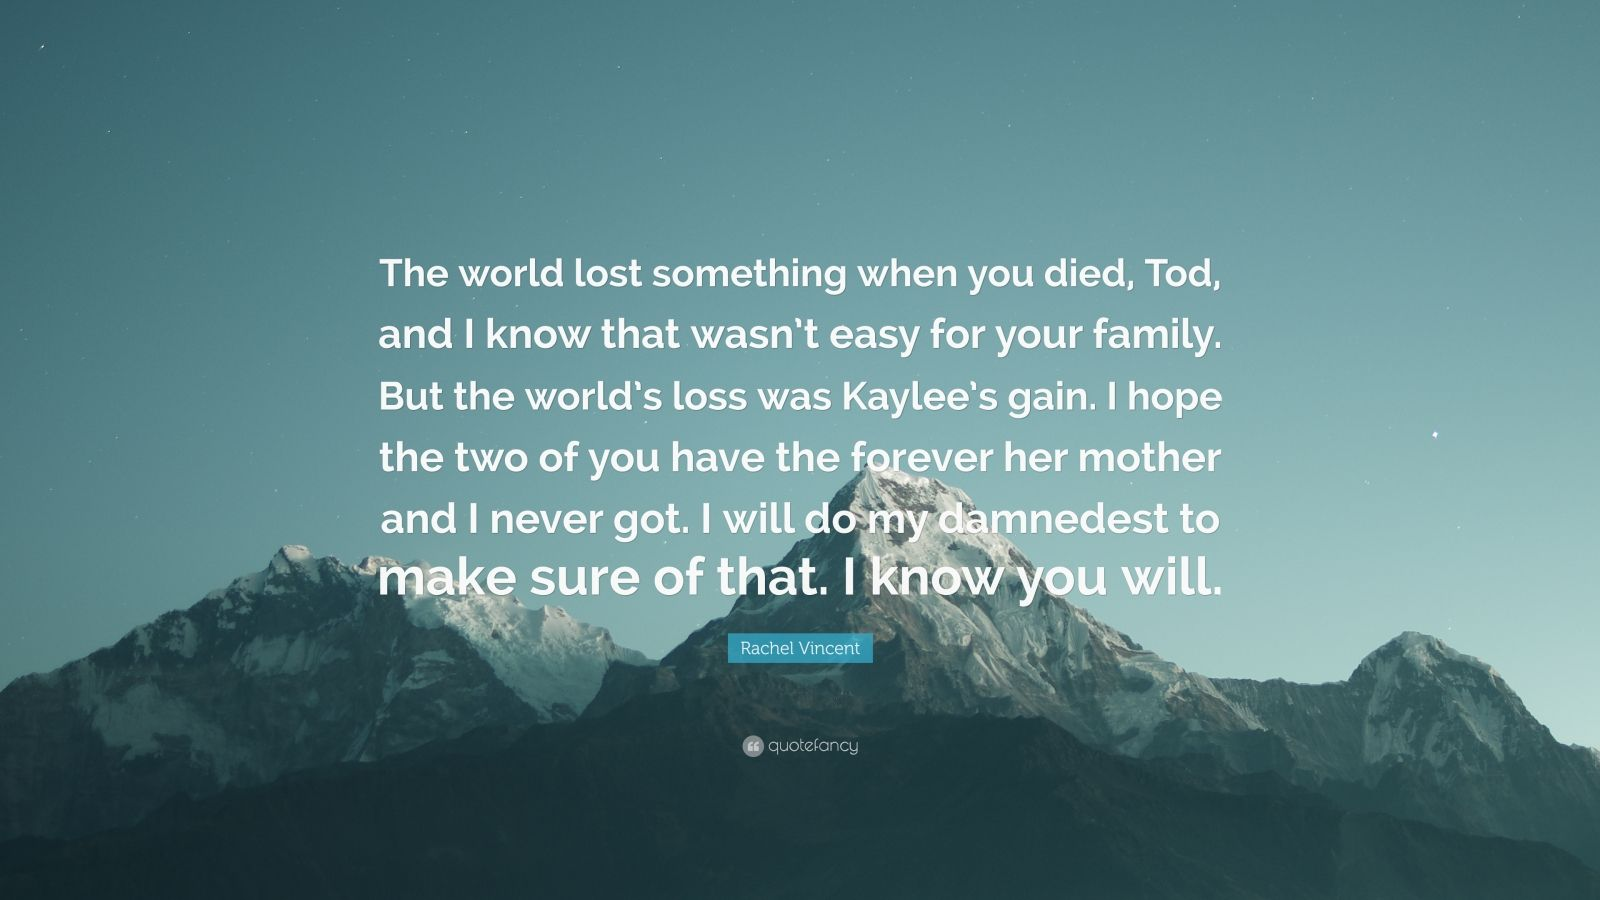 """Rachel Vincent Quote: """"The world lost something when you died, Tod, and I know that wasn't easy for your family. But the world's loss was Kaylee's gain. I hope the two of you have the forever her mother and I never got. I will do my damnedest to make sure of that. I know you will."""""""